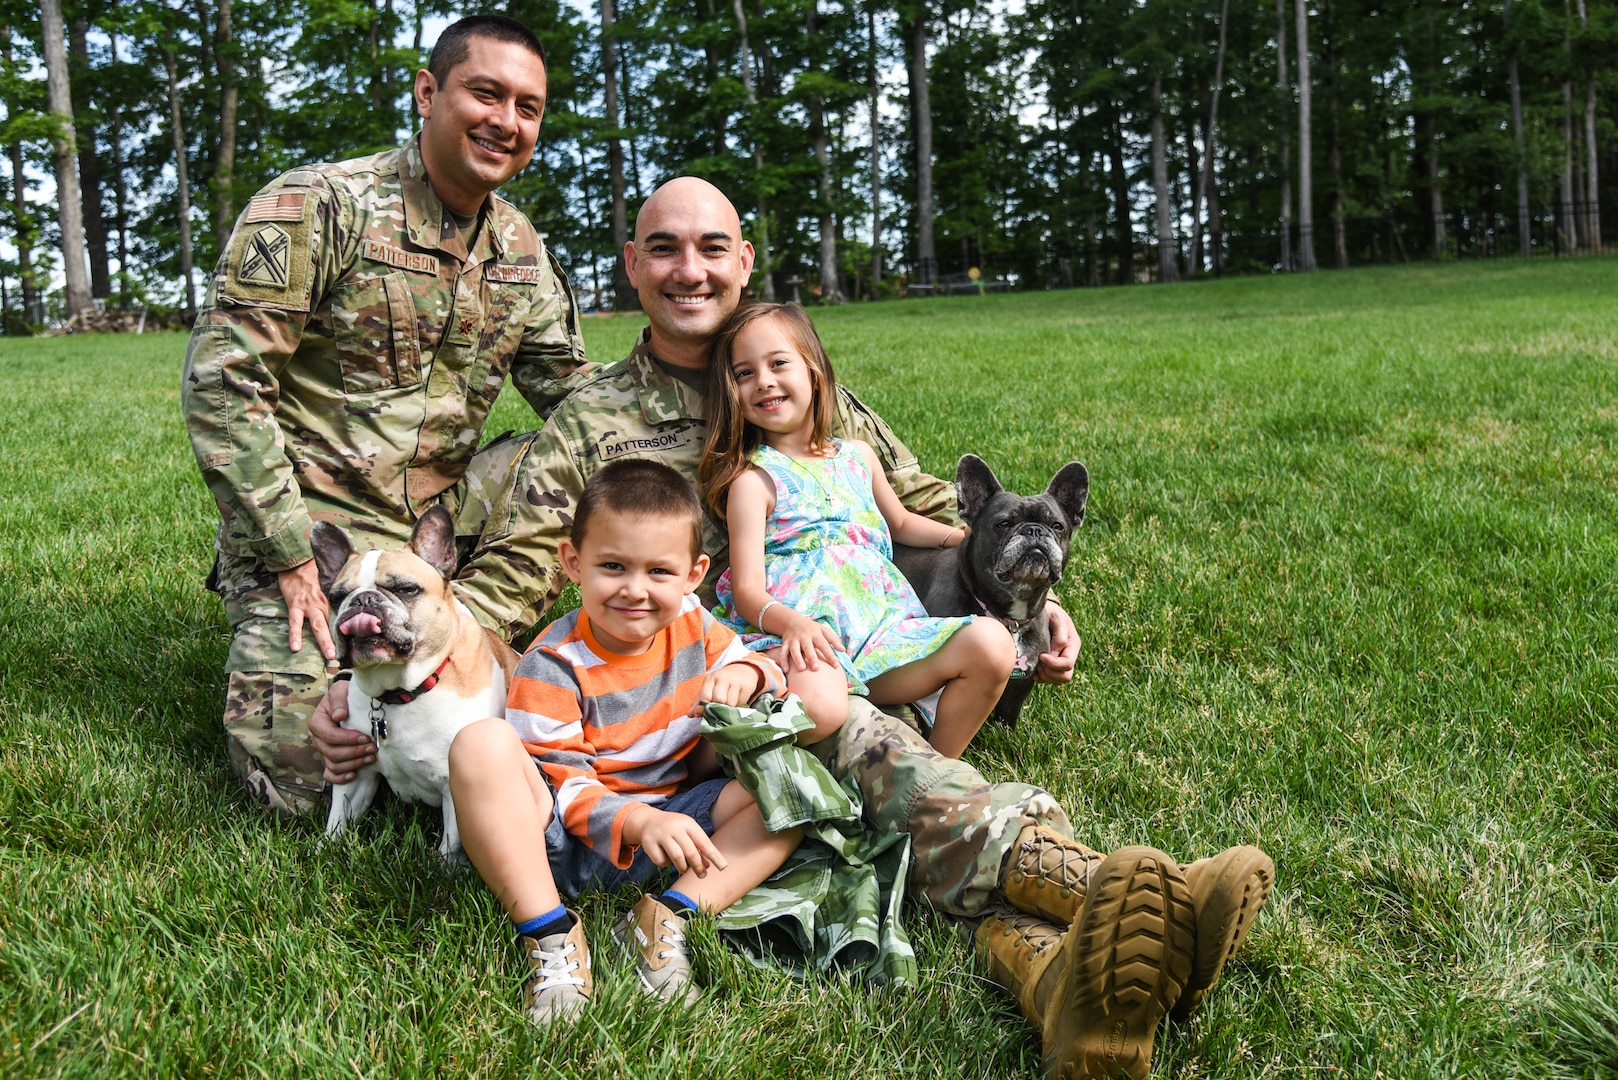 Dual-military couple provides mutual support through unique challenges